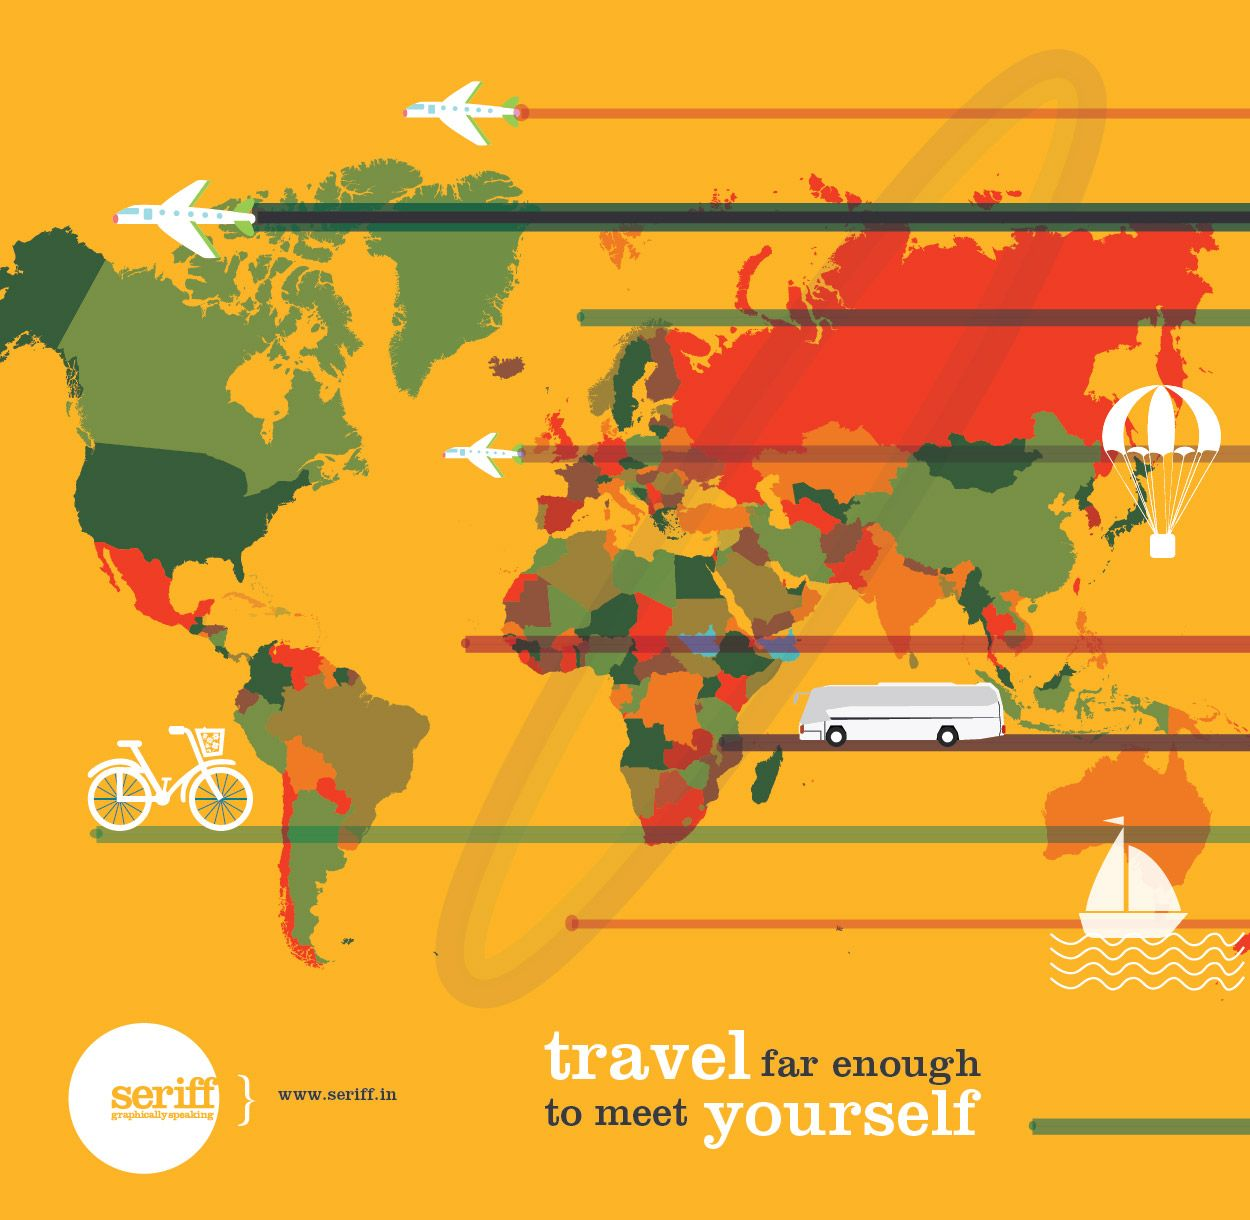 Holiday! #summer #holidays #vacation #time #travel #countries #trasport #airplane #buses #ship #parachute #graphicdesign #Seriff